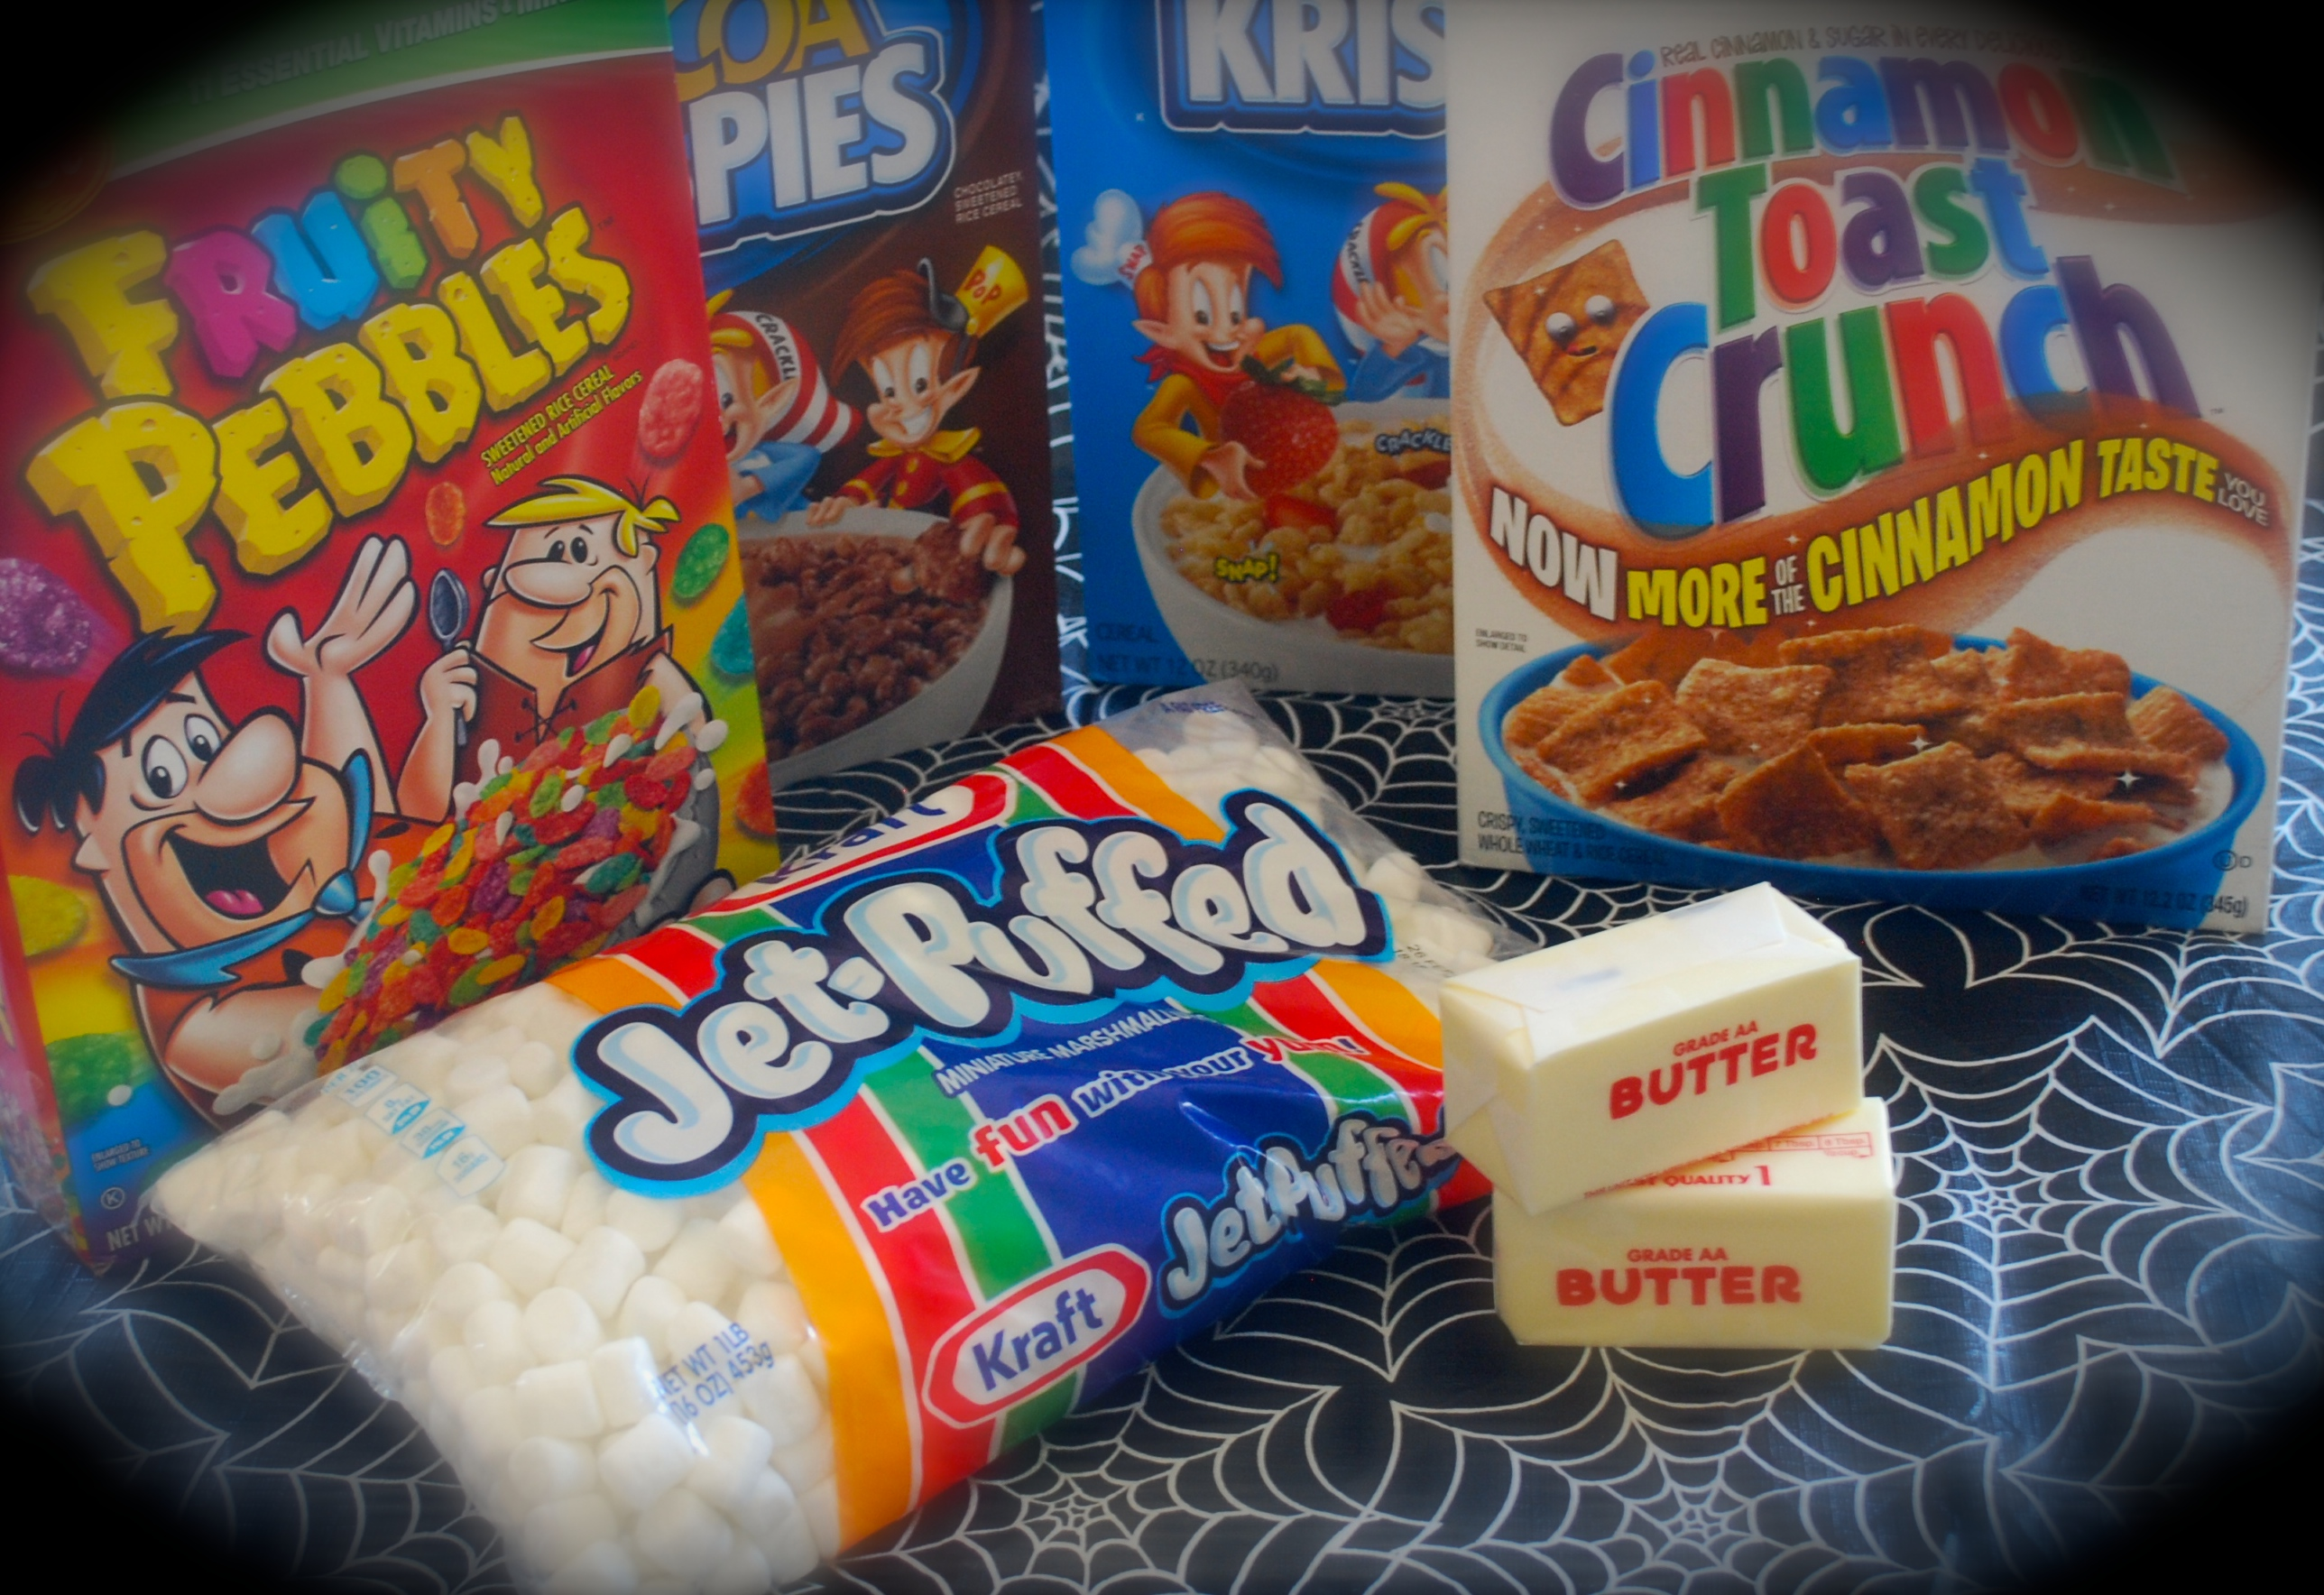 Its the eleventh hourmake cereal killer treats stufftreeloves killer cereals marshmallows and butter ccuart Image collections